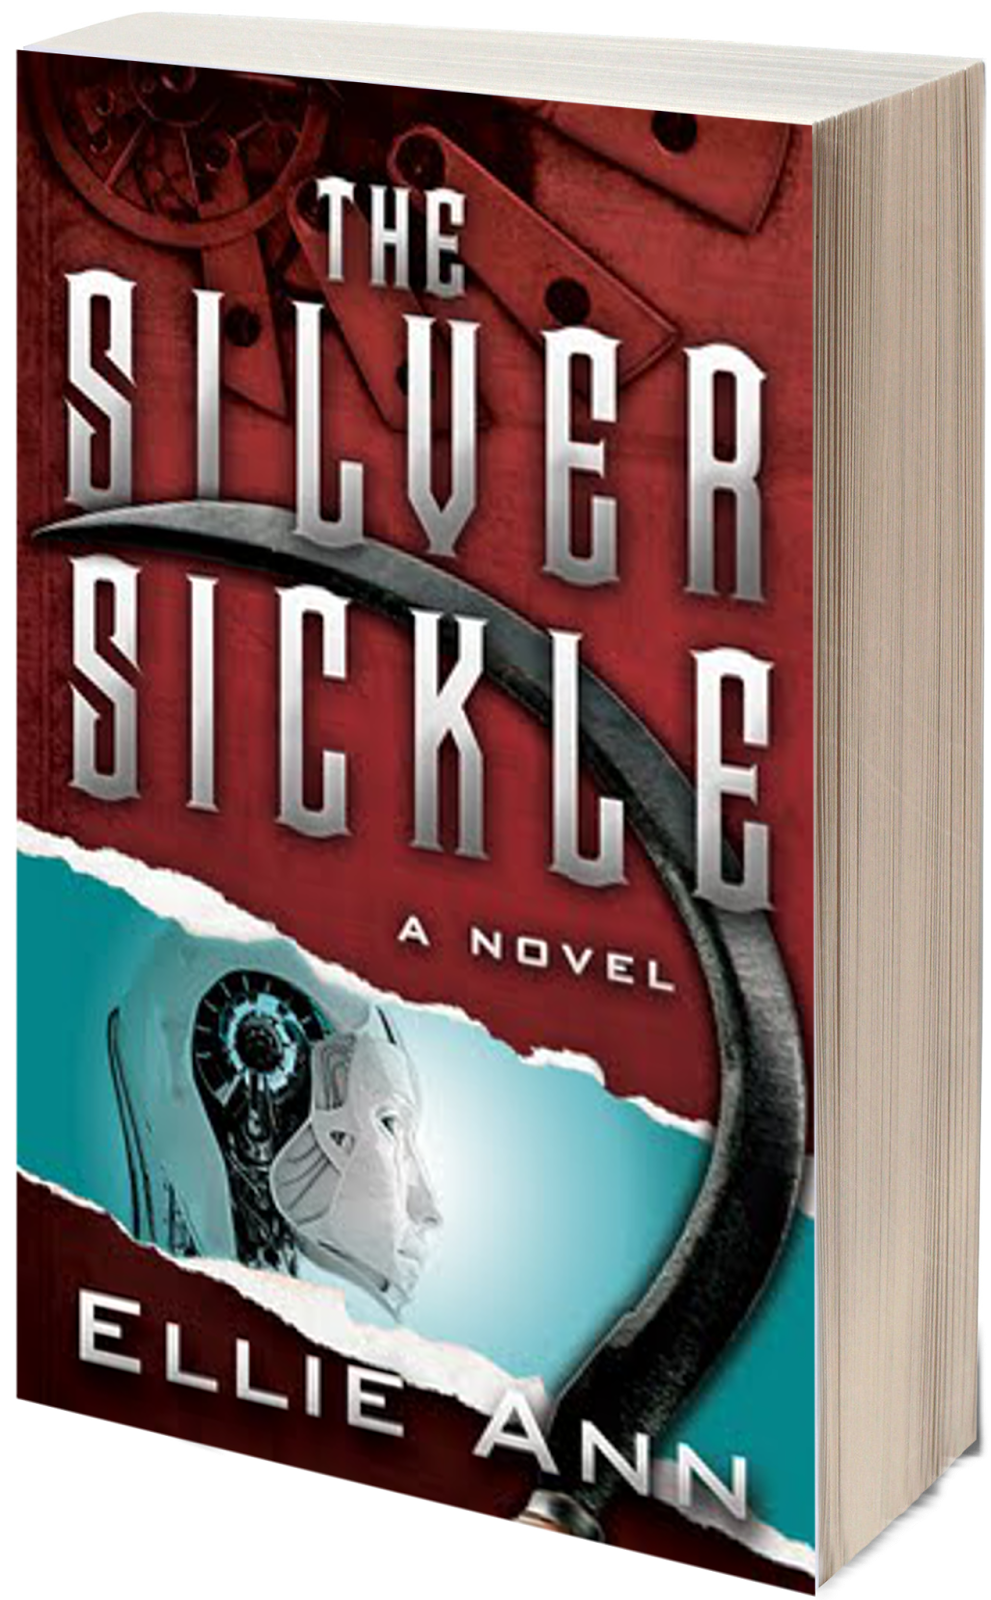 The Silver Sickle by Ellie Ann